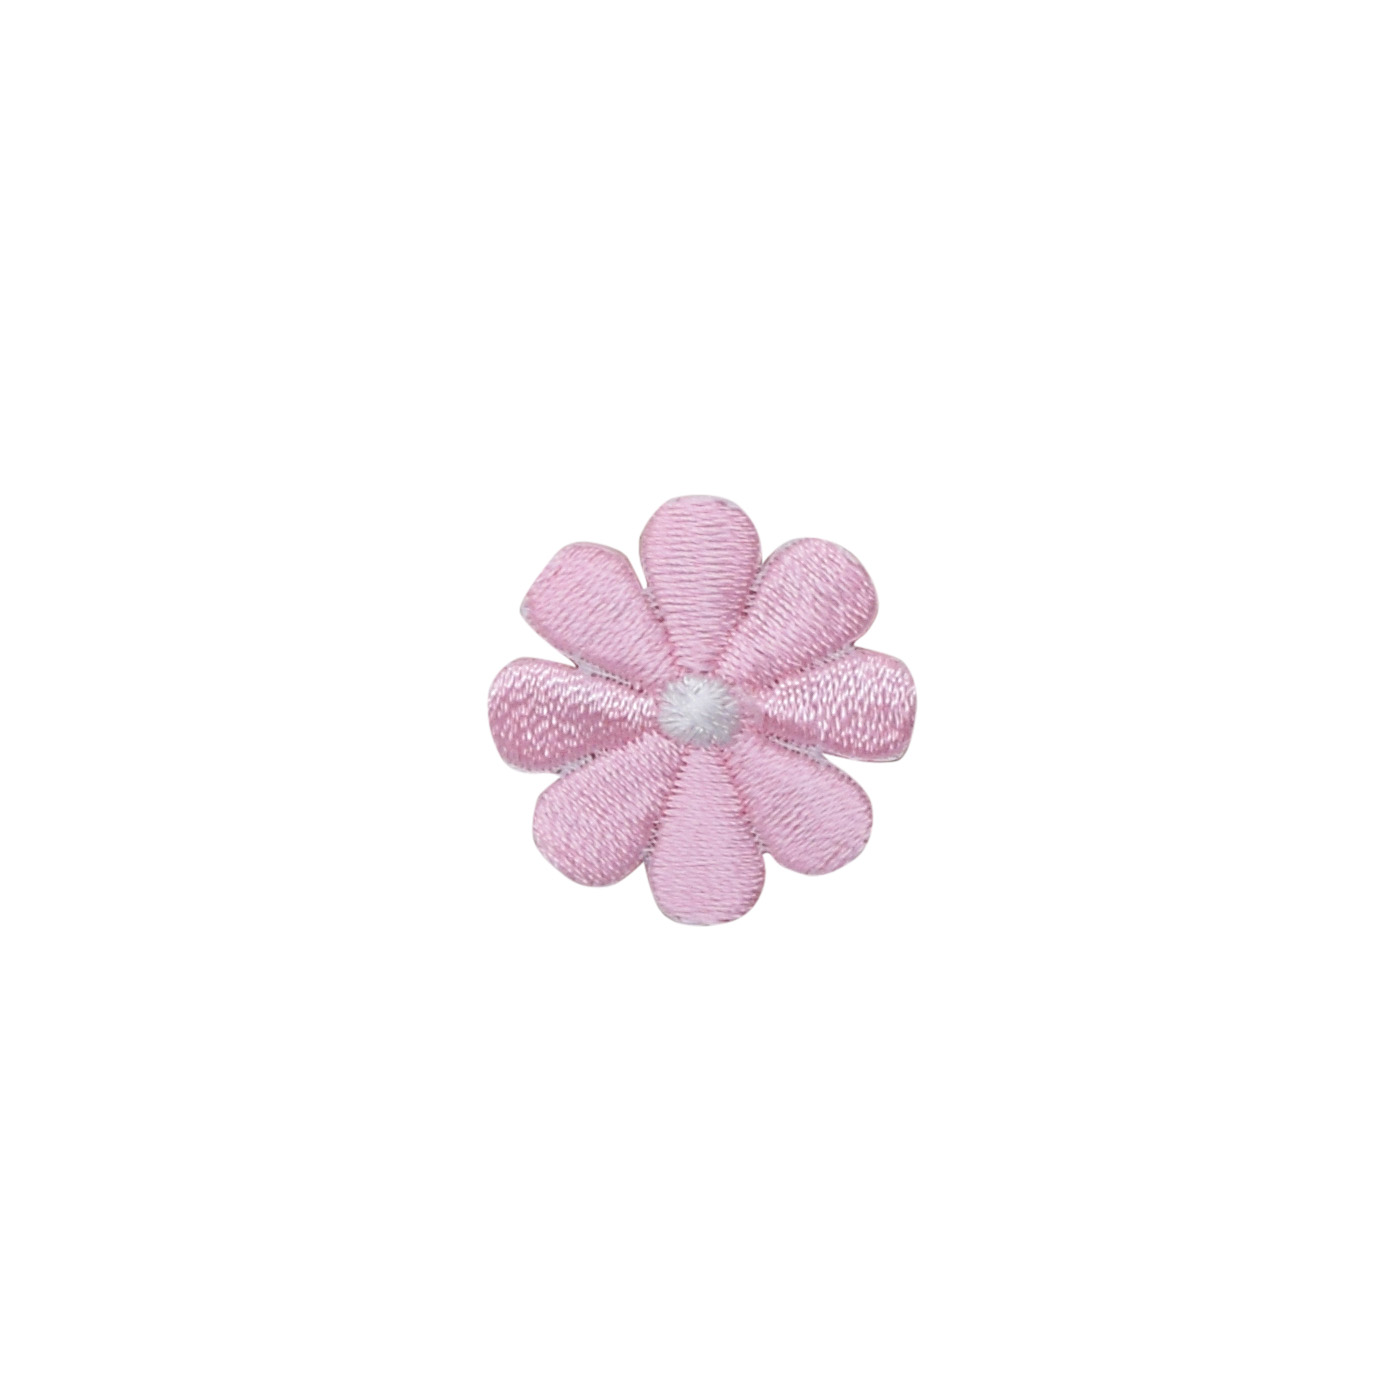 PINK DAHLIA FLOWER IN BLOOM Embroidered Sew Iron On Cloth Patch Badge APPLIQUE